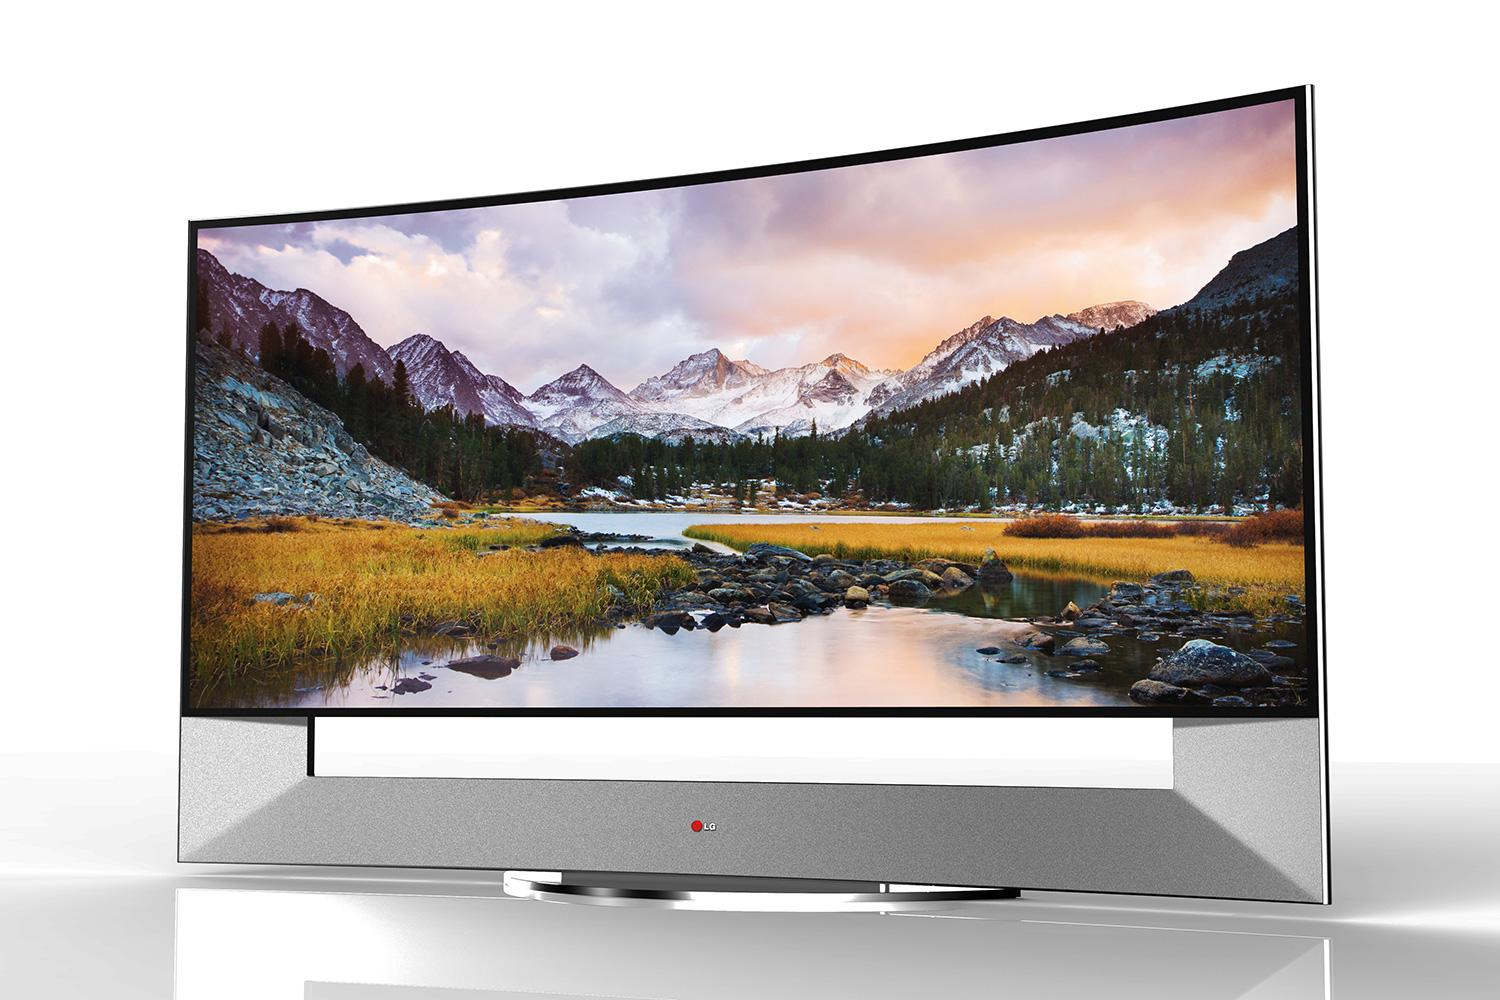 The Best 4k Tv Deals Cyber Monday 2017 Allgamers